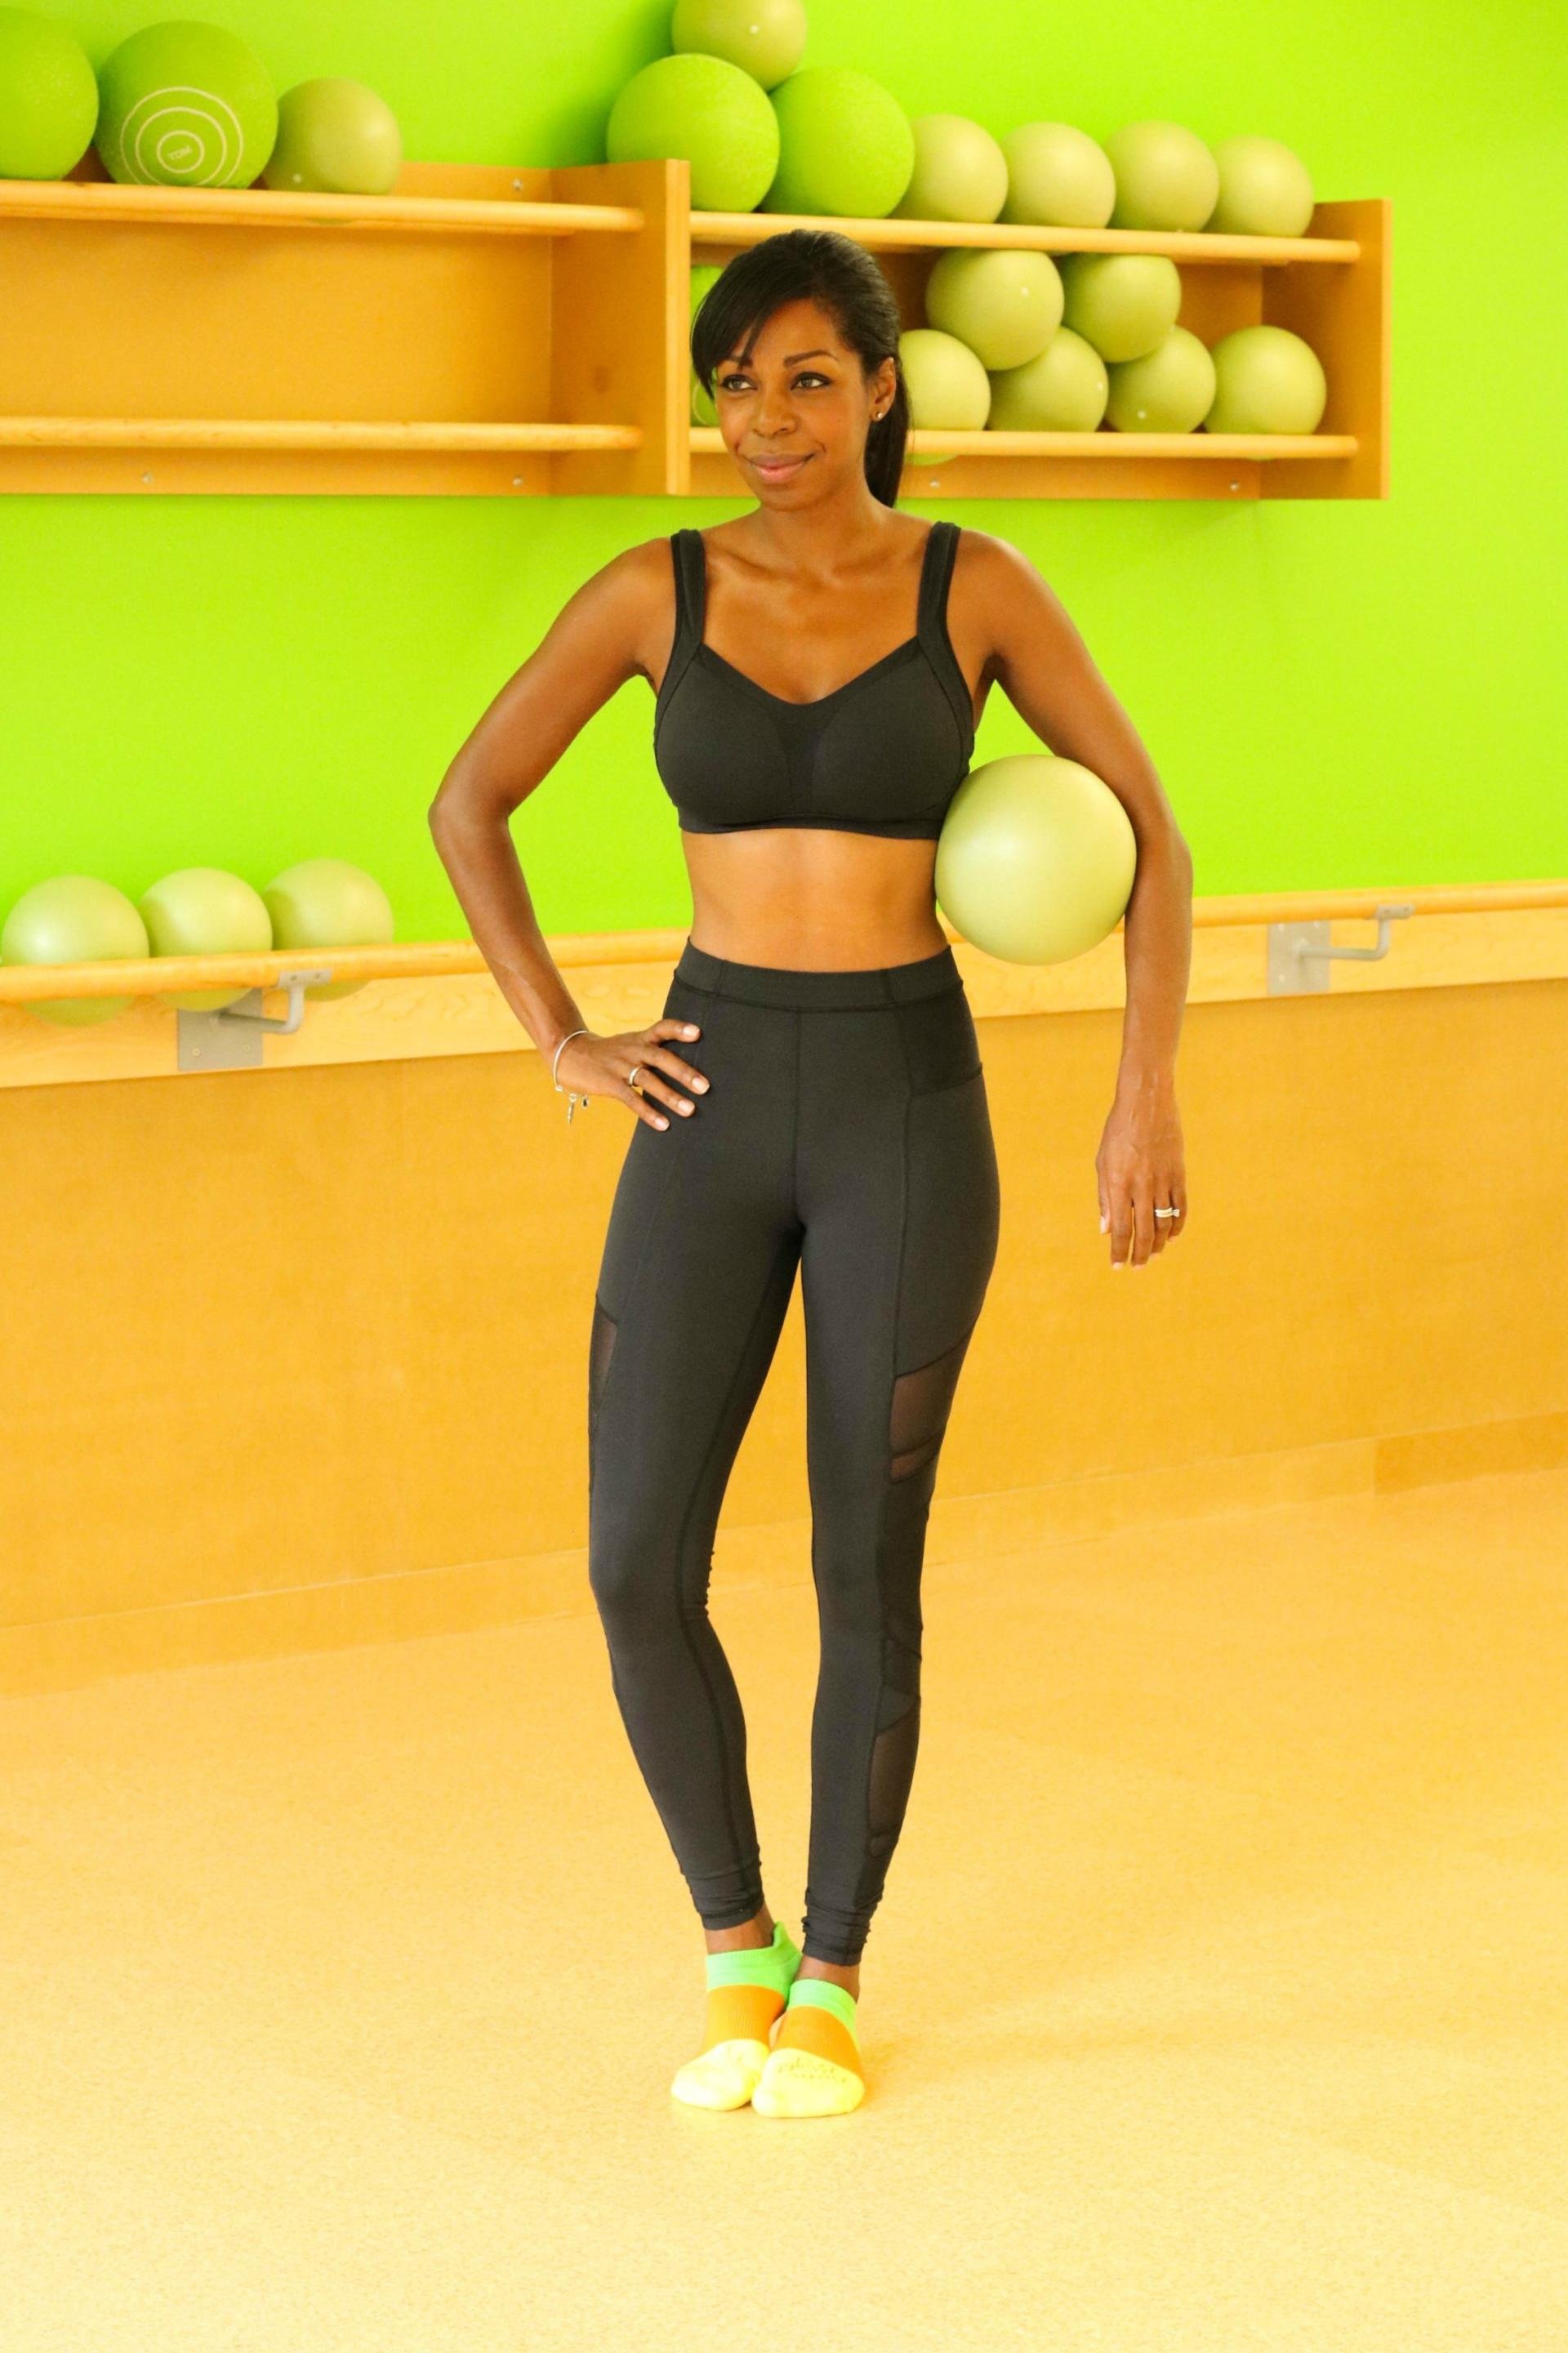 How I Stay Fit - The Dailey Method x Style Domination